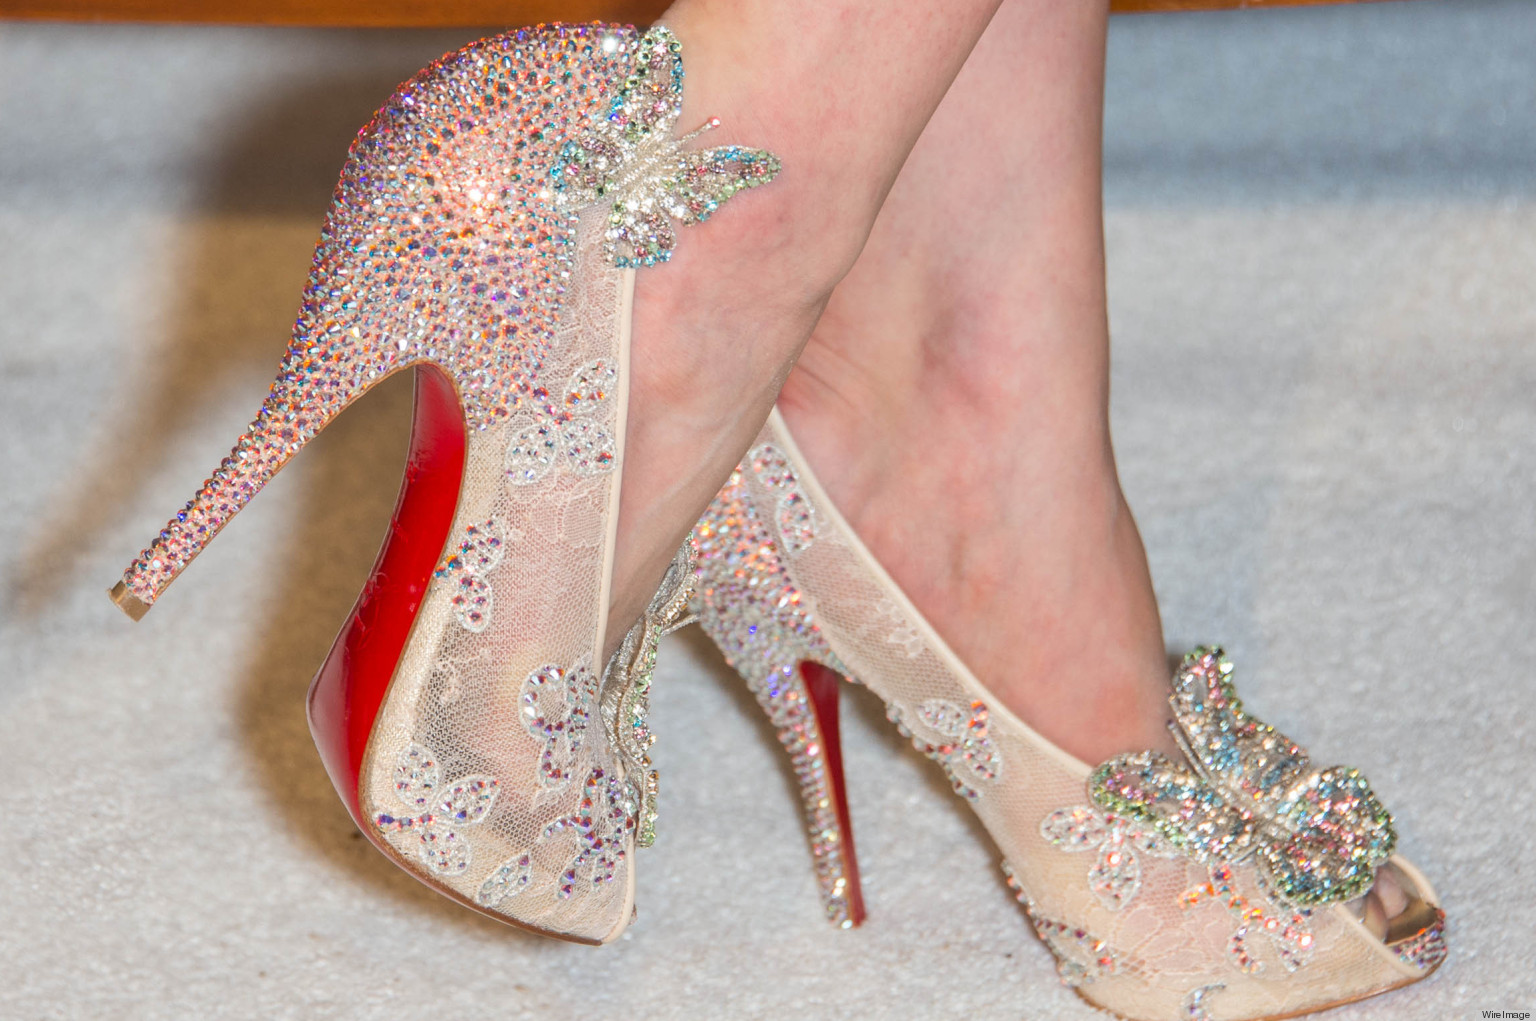 Christian Louboutin vs. YSL \u0026#39;Red Soles\u0026#39; Lawsuit Finally Dismissed